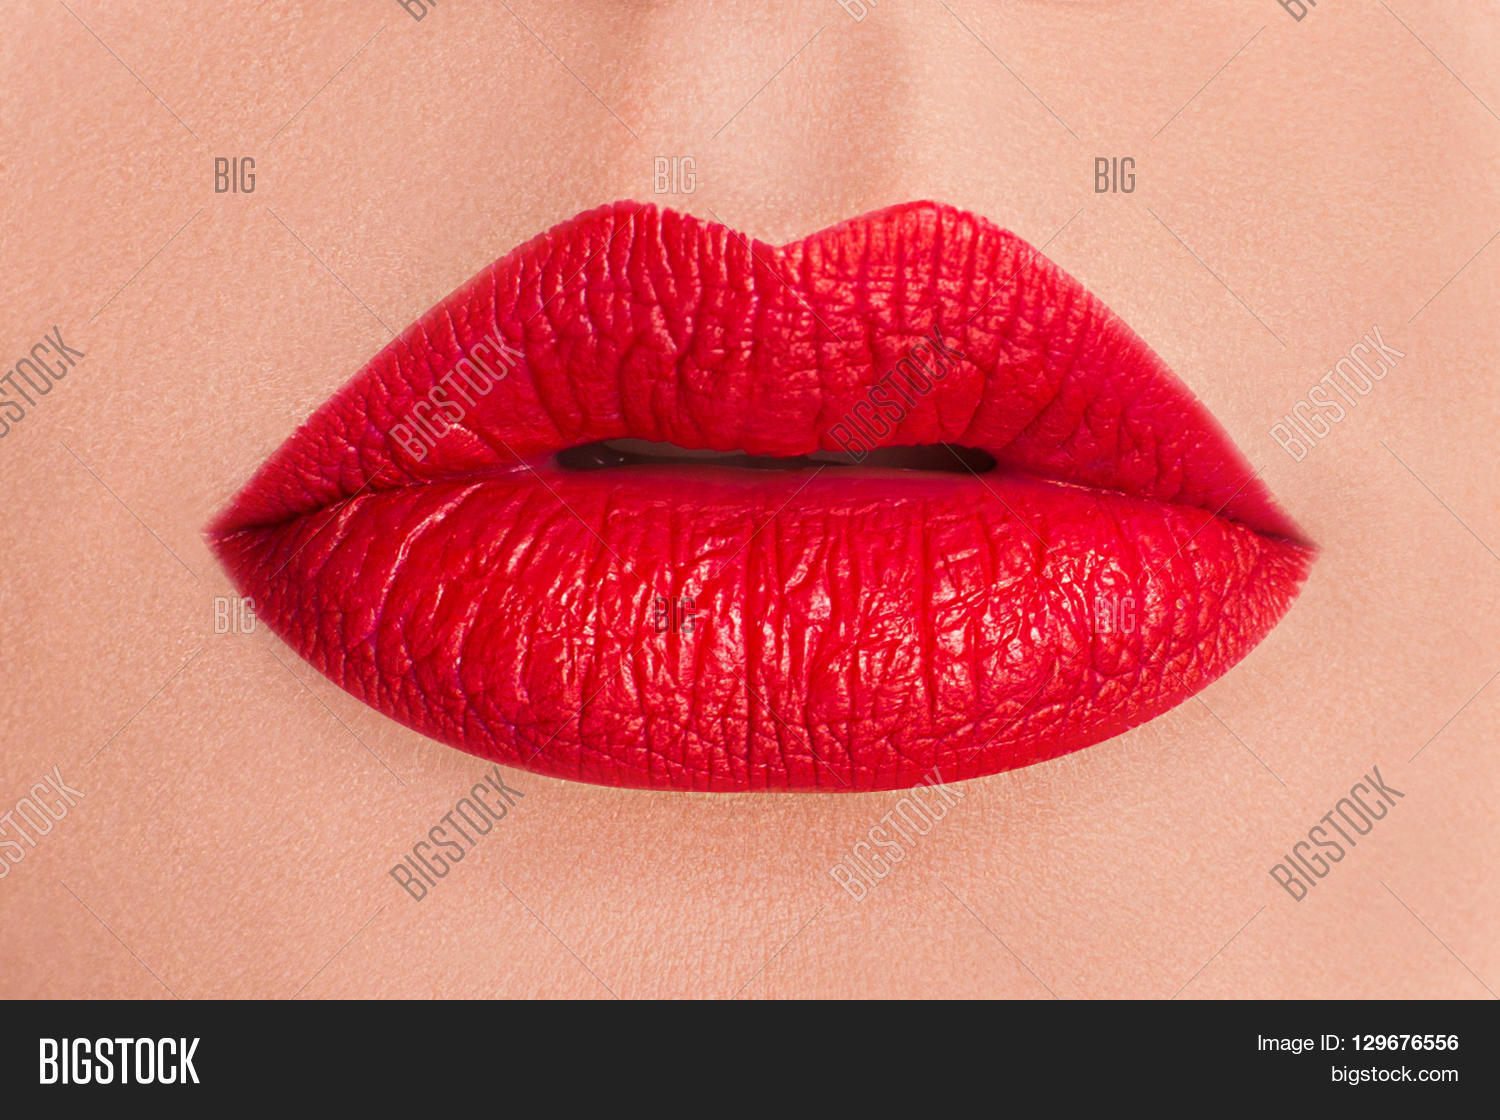 Sexy Lips Beauty Red Image Photo Free Trial Bigstock